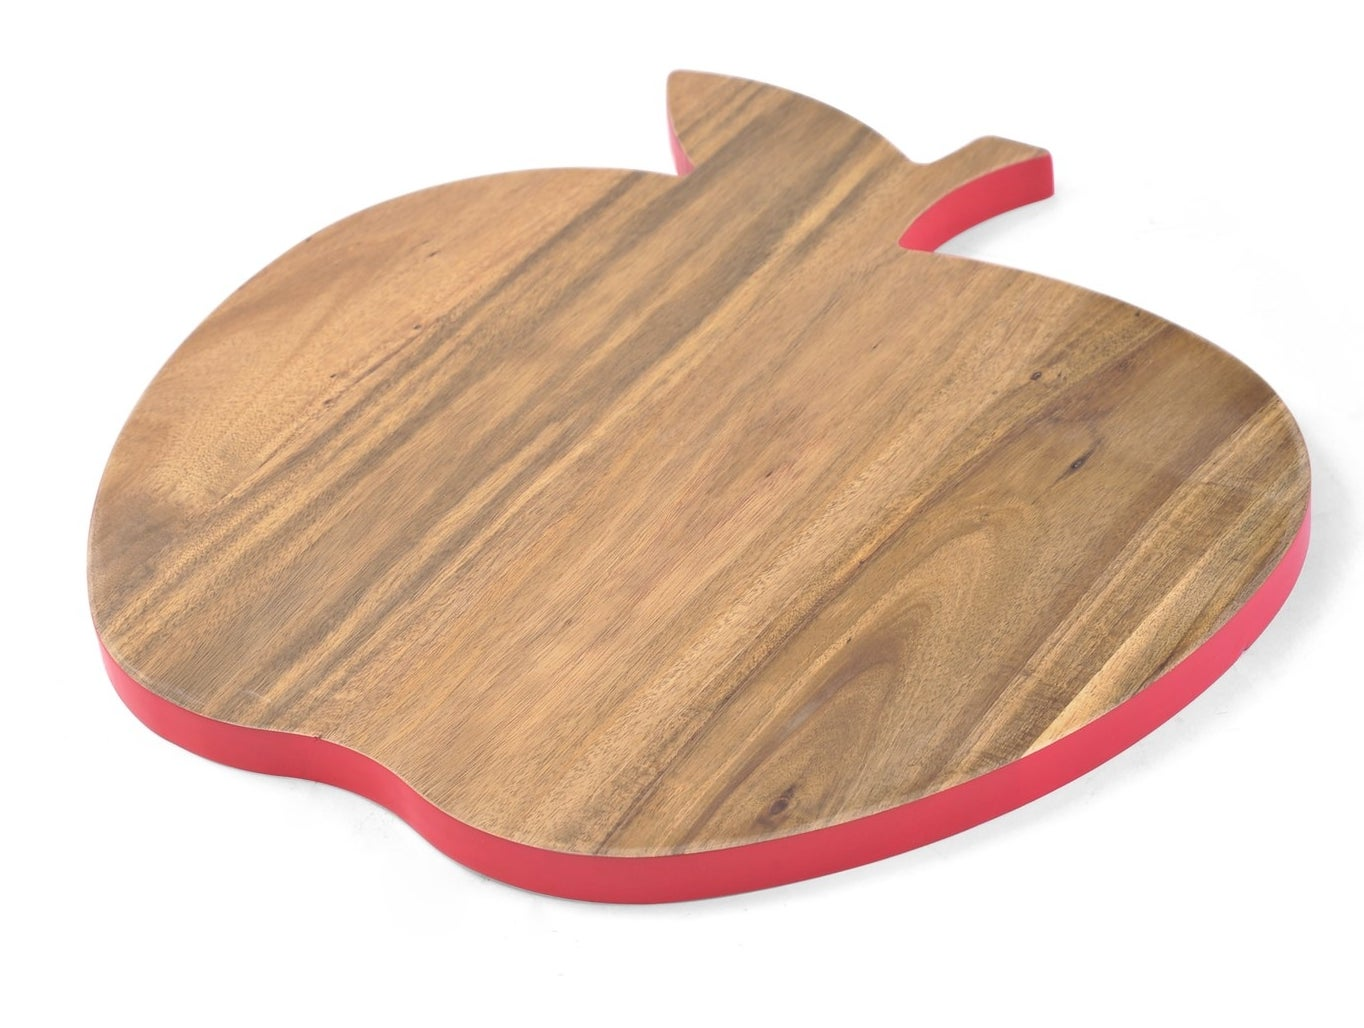 An apple cutting board you'll wanna ~pick~ over all others, every time.